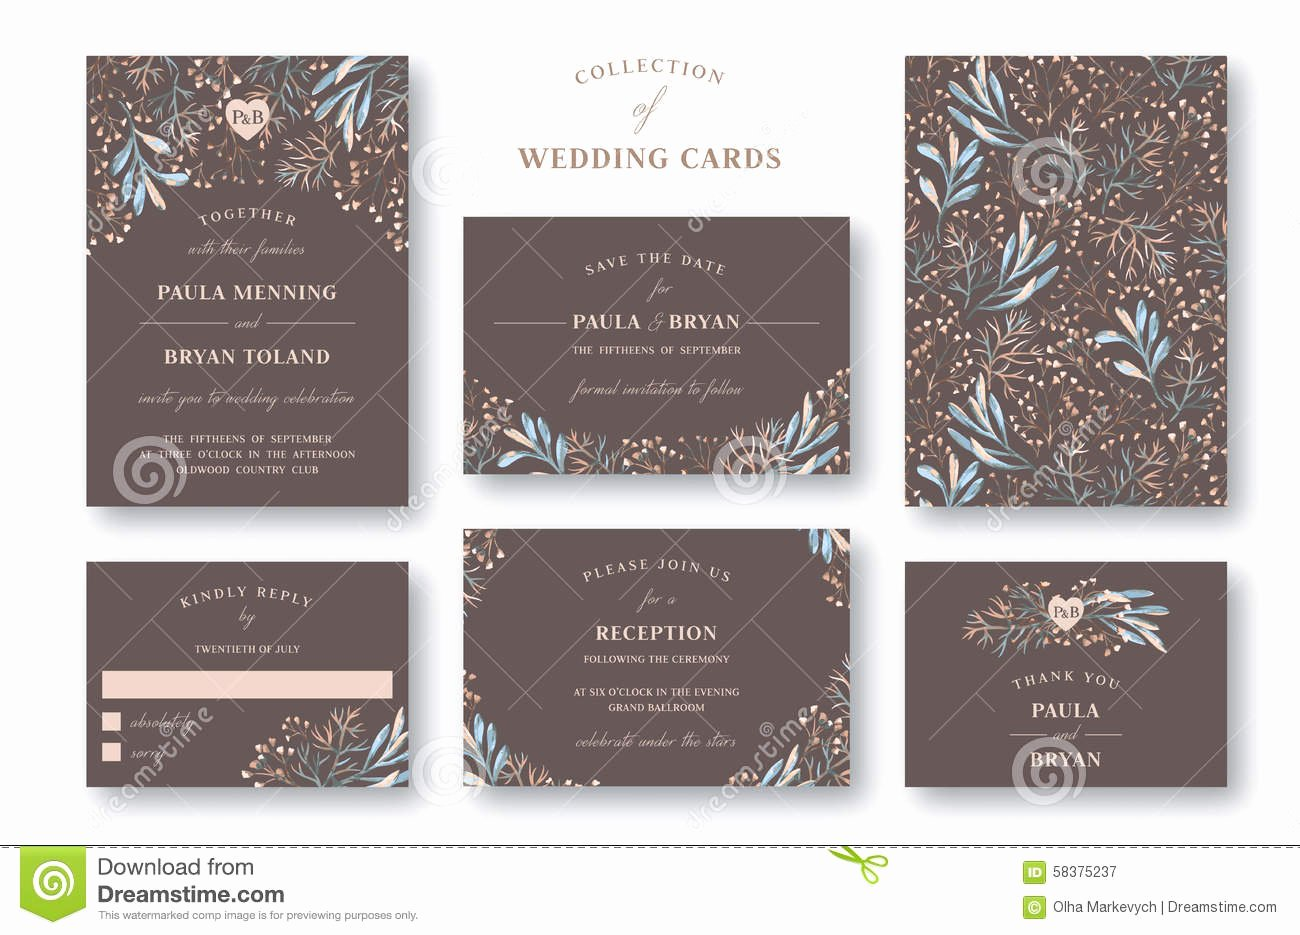 Reception Cards Template Free Elegant Collection Wedding Invitation Stock Vector Image